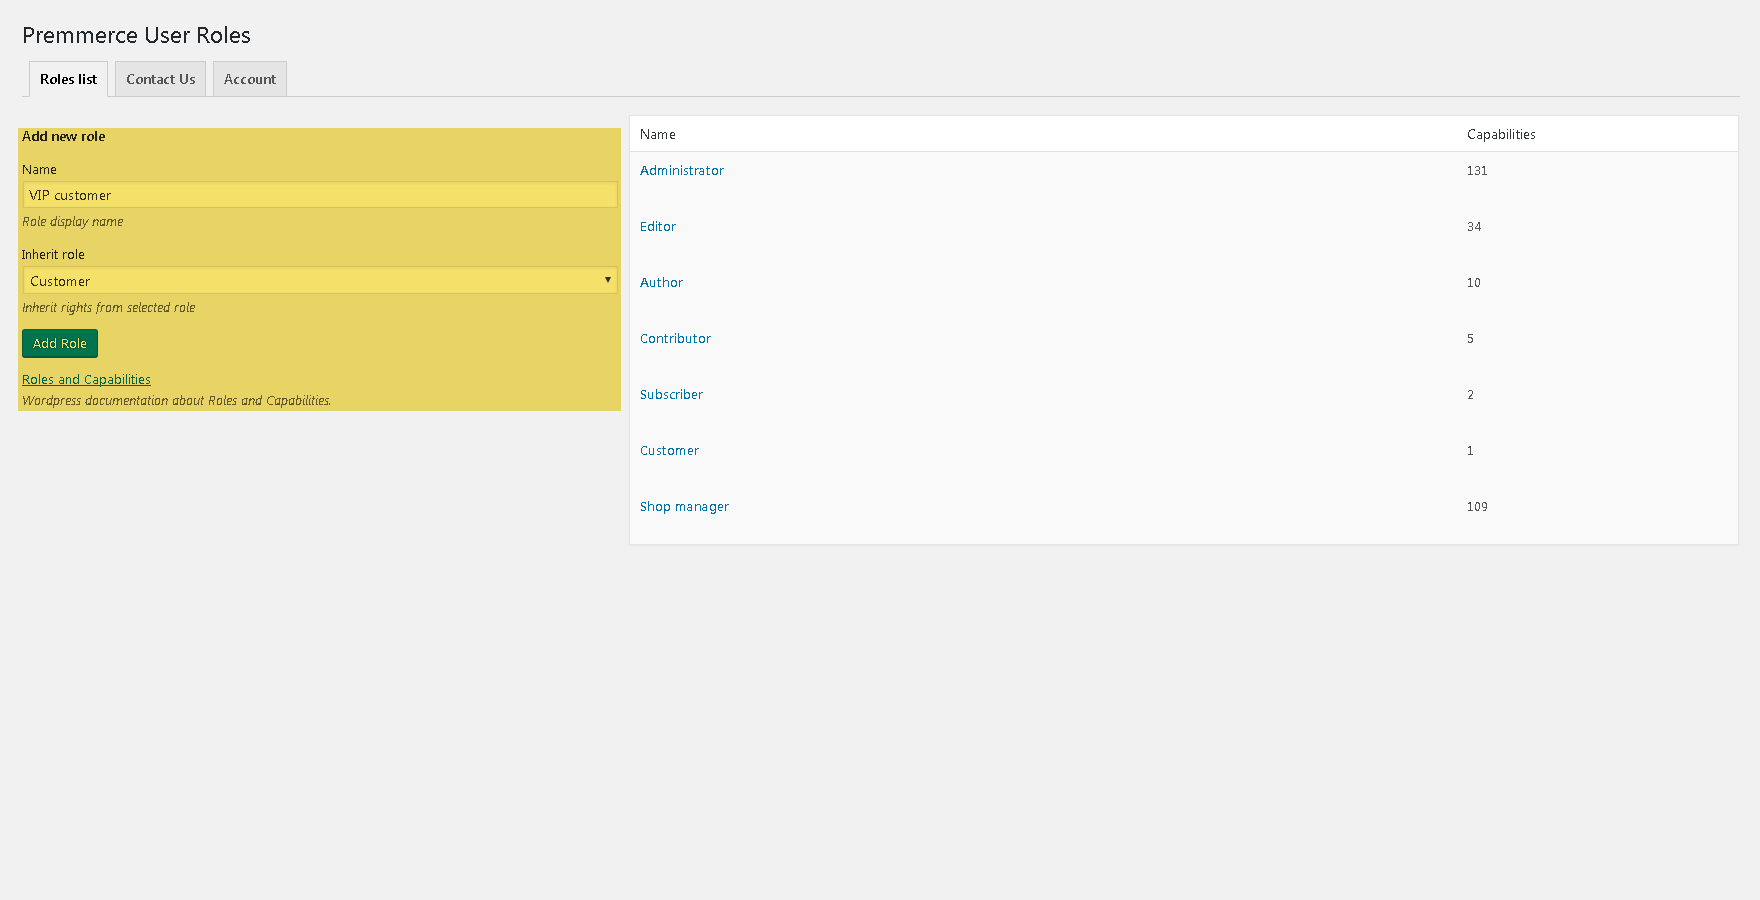 Adding user roles with the features needed.